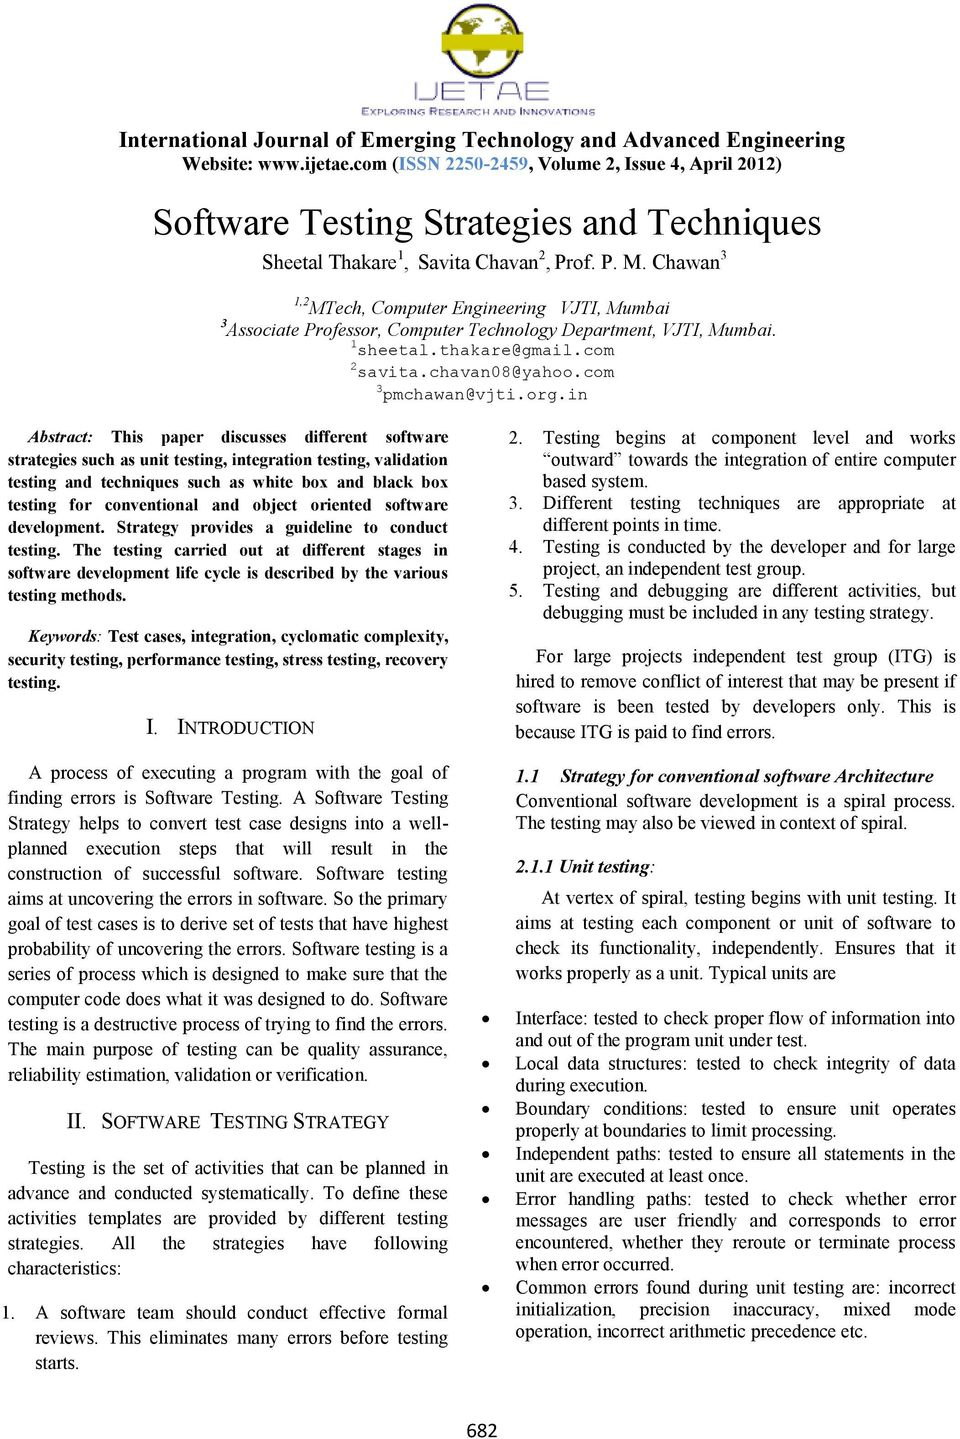 in Abstract: This paper discusses different software strategies such as unit testing, integration testing, validation testing and techniques such as white box and black box testing for conventional